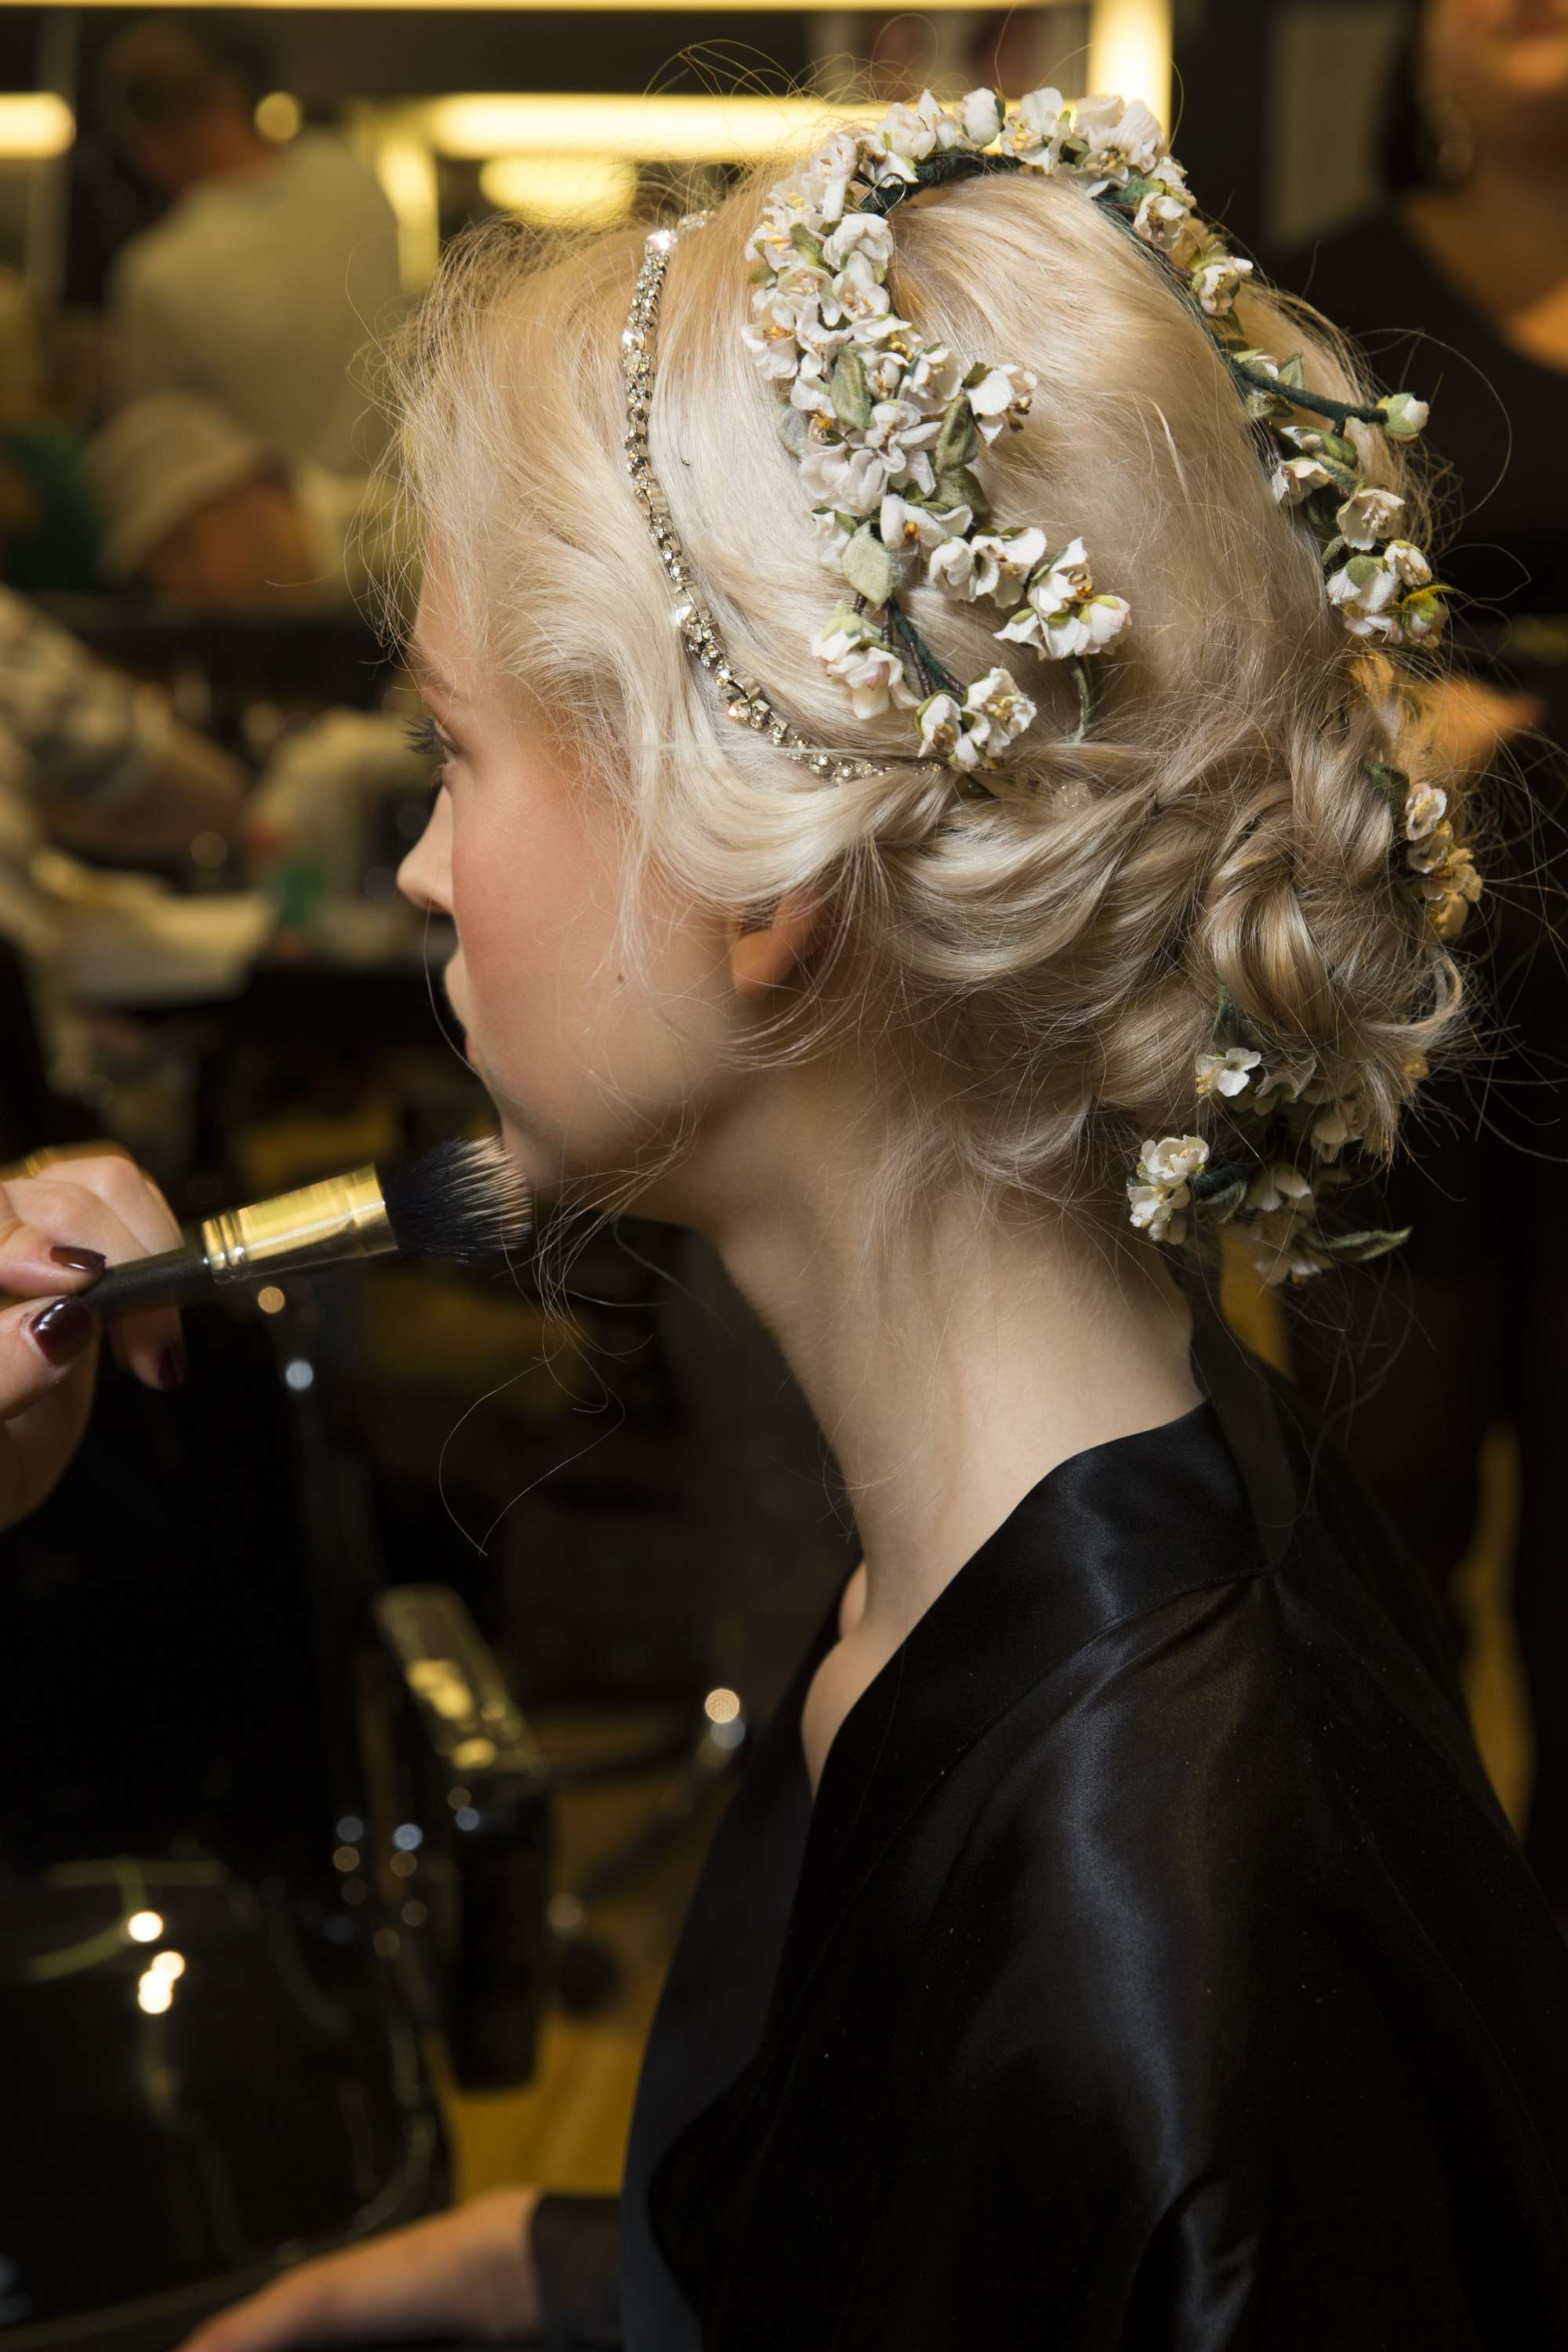 greek hairstyles: shot of model with flowers in an updo backstage